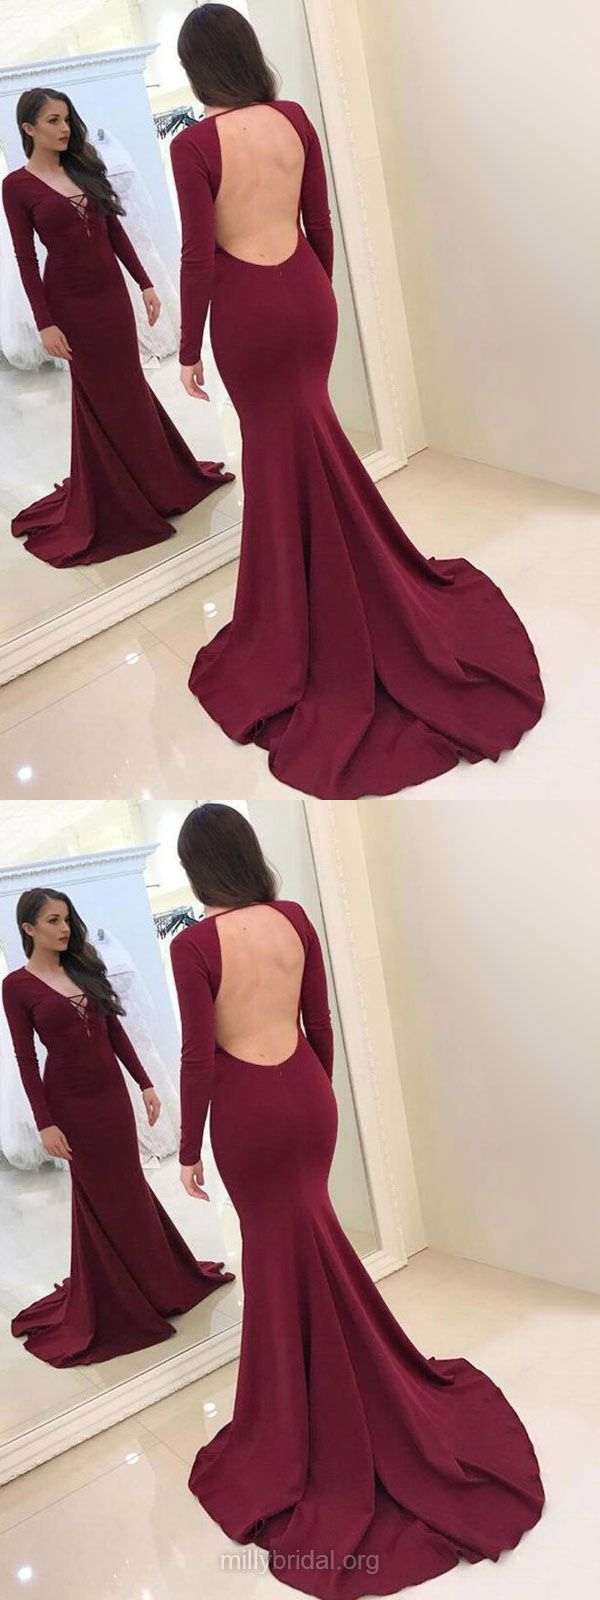 Burgundy Prom Dresses Long Prom Dresses Prom Dresses For